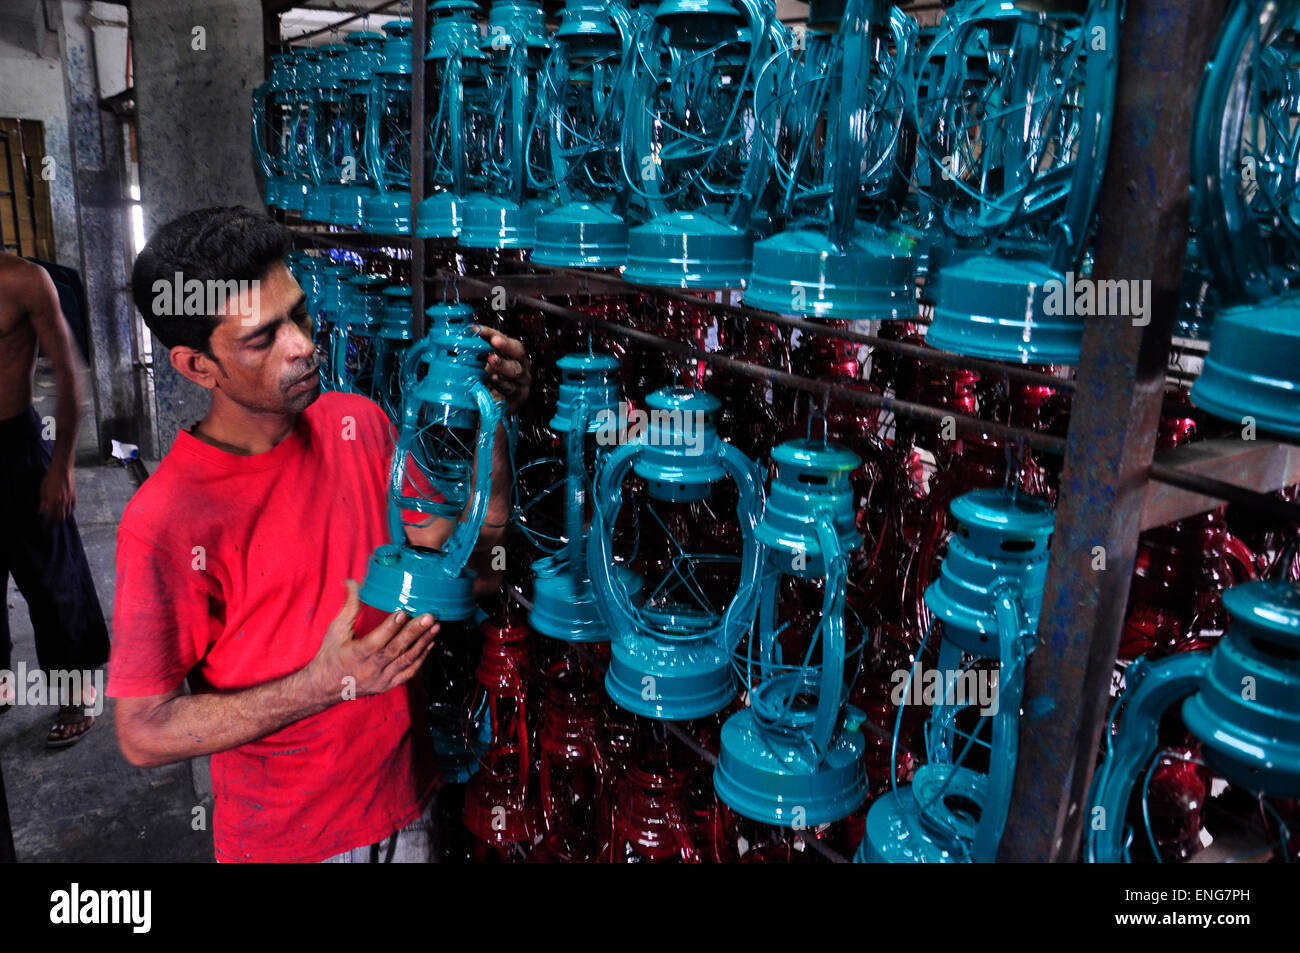 Superior A Labor Works In A Hurricane Lantern (oil Lamp) Factory At Kamrangyr Char  In Dhaka, Bangladesh. June 6, 2013